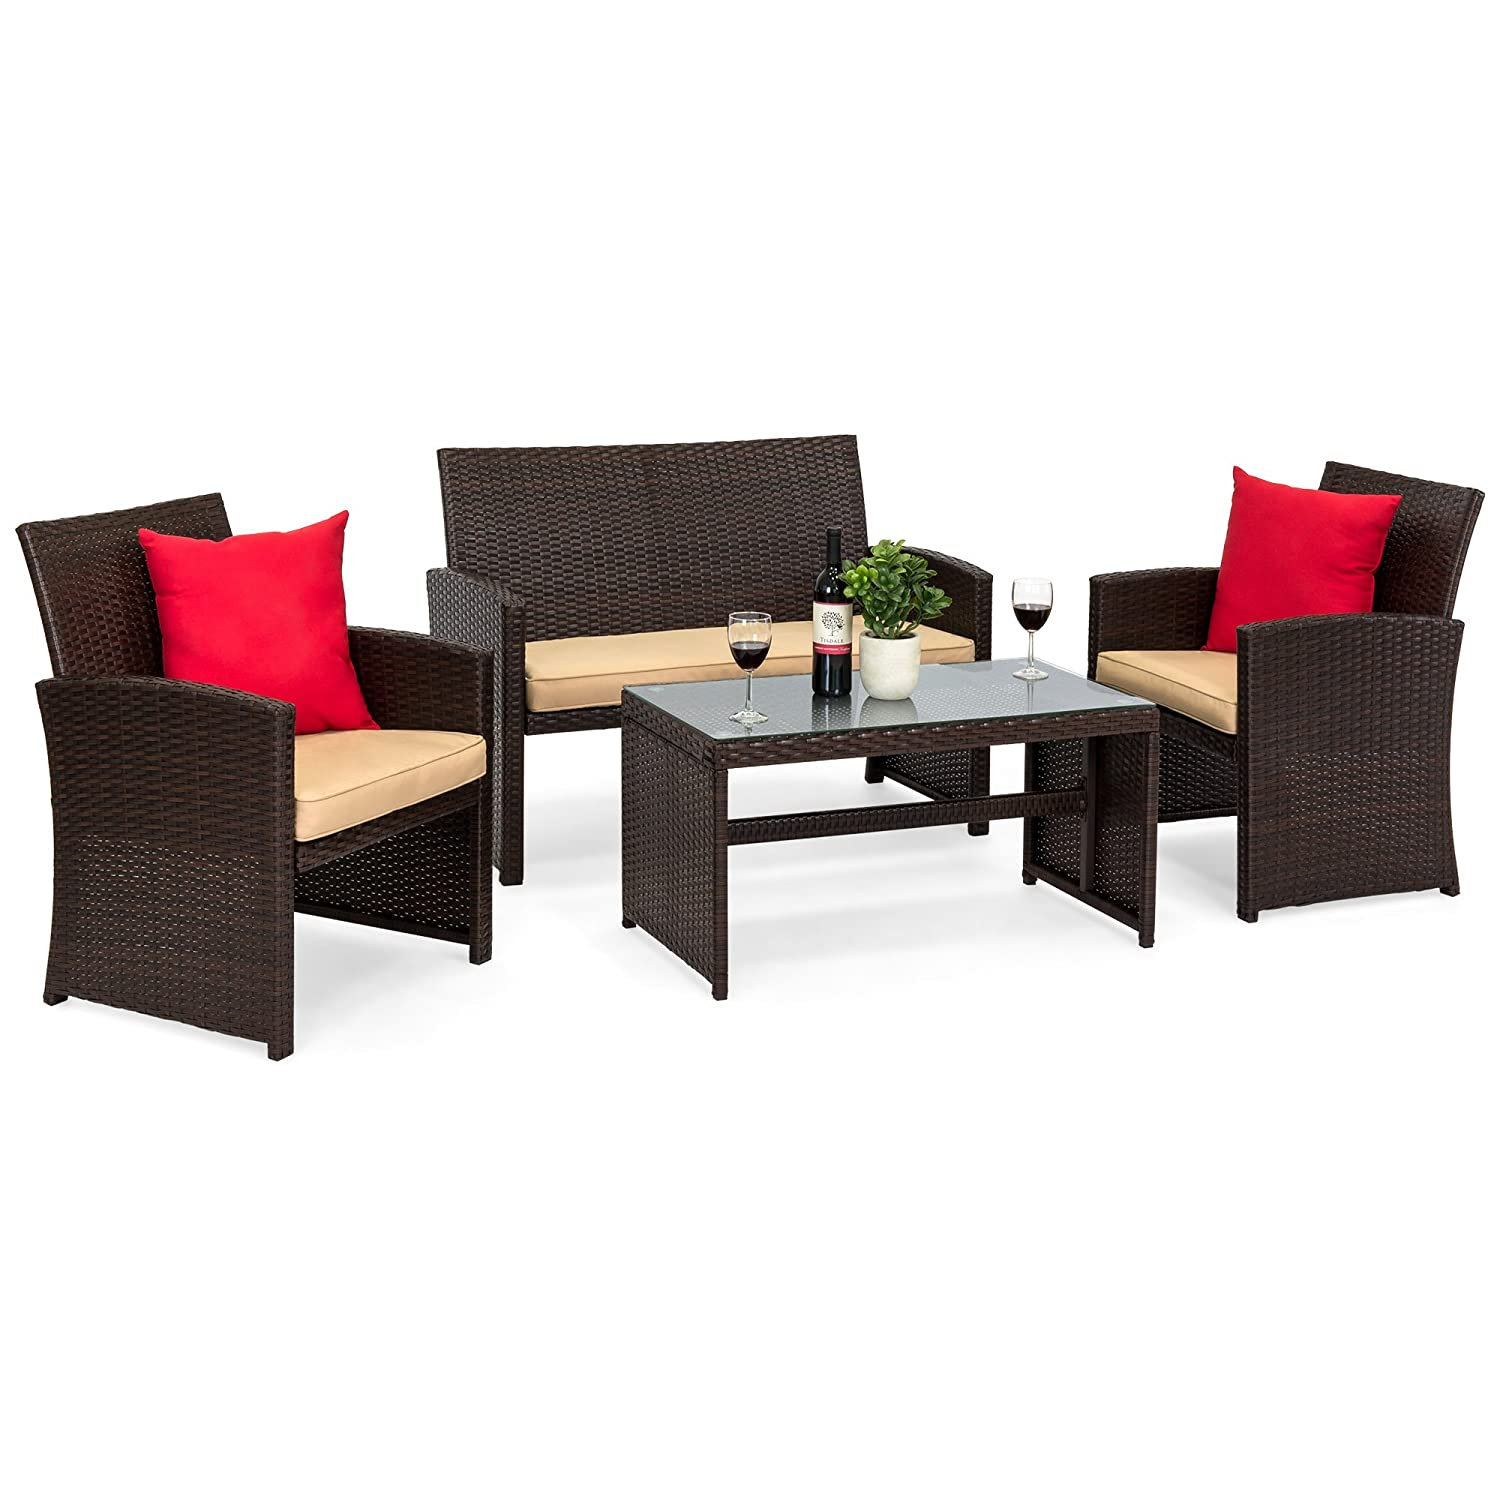 Amazon.com: Best Choice Products 4-Piece Wicker Patio Furniture Set  w/Tempered Glass, 3 Sofas, Table, Cushioned Seats - Brown: Garden & Outdoor - Amazon.com: Best Choice Products 4-Piece Wicker Patio Furniture Set